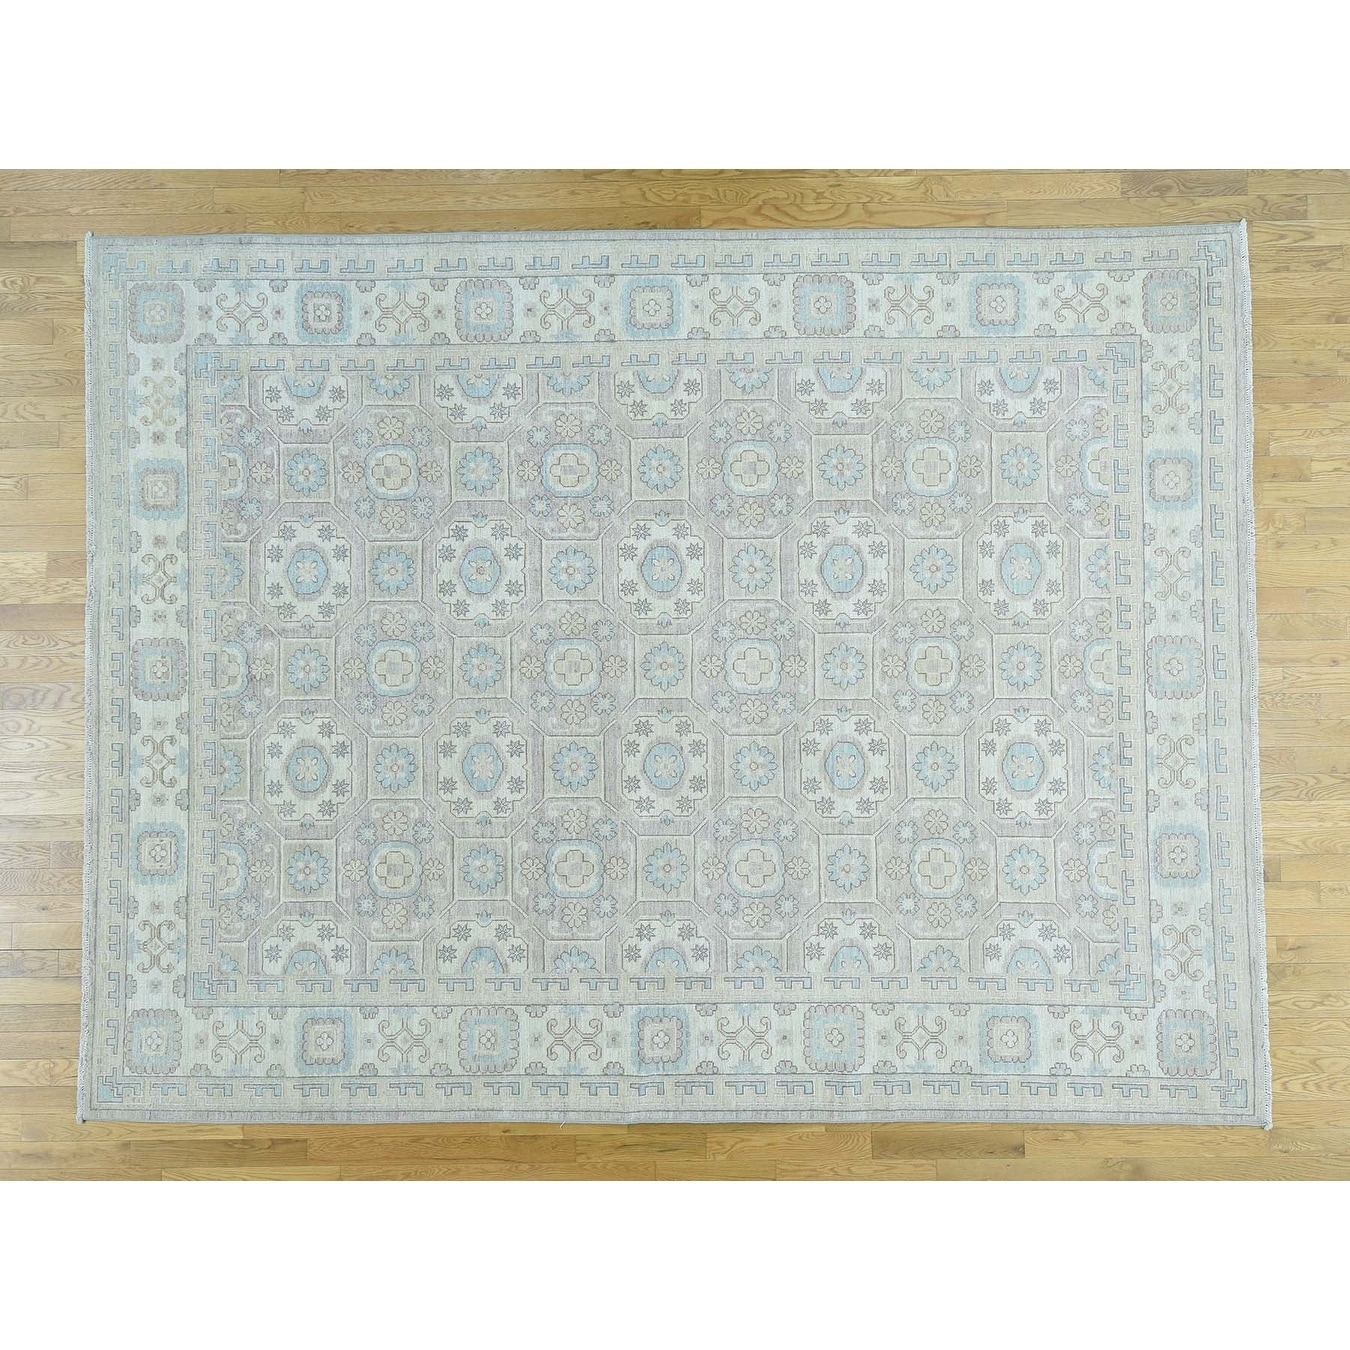 Hand Knotted Grey Khotan and Samarkand with Wool Oriental Rug - 92 x 12